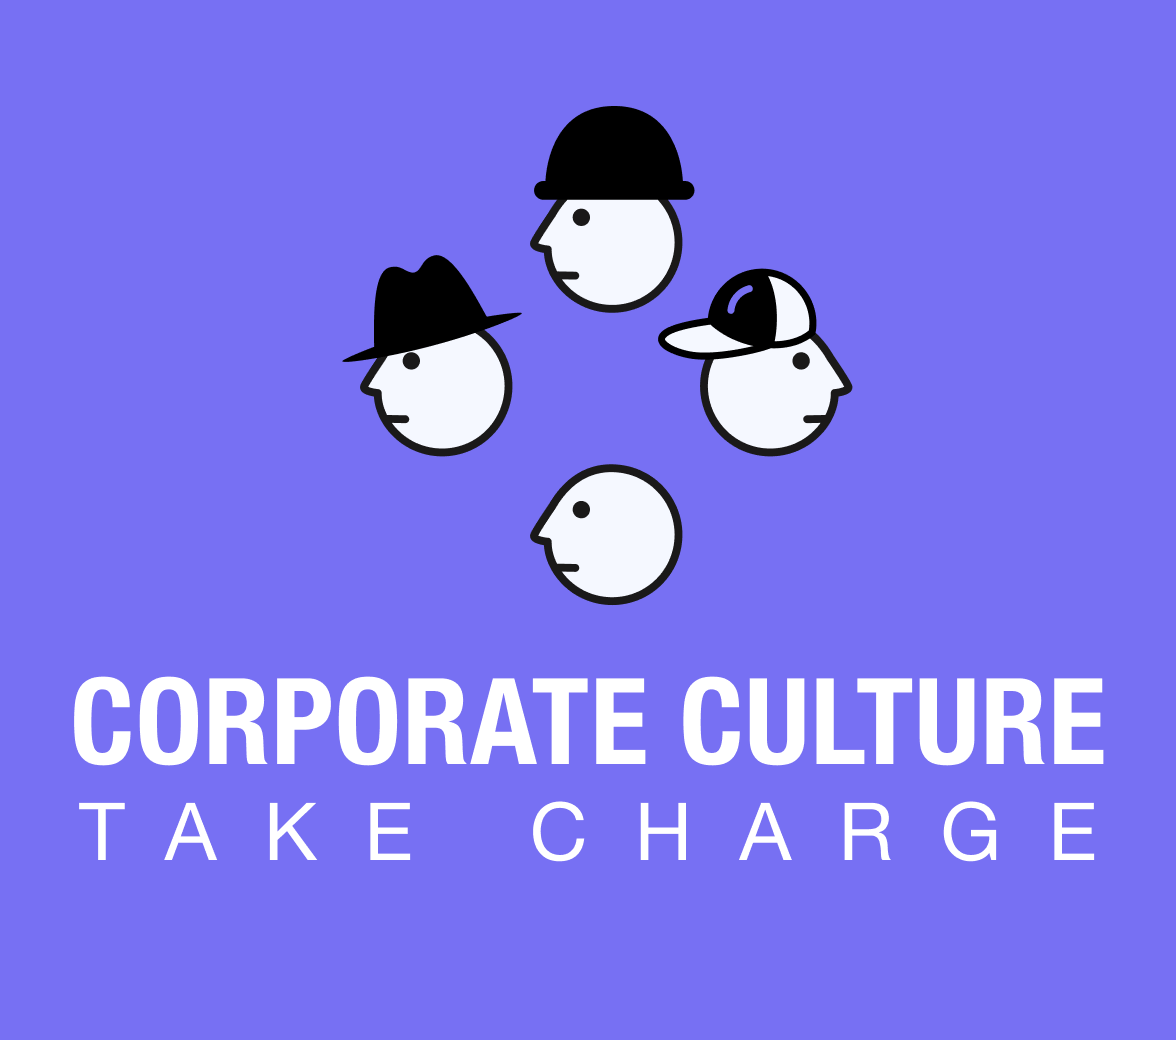 Take Charge of the Corporate Culture and Build a Stronger Organization